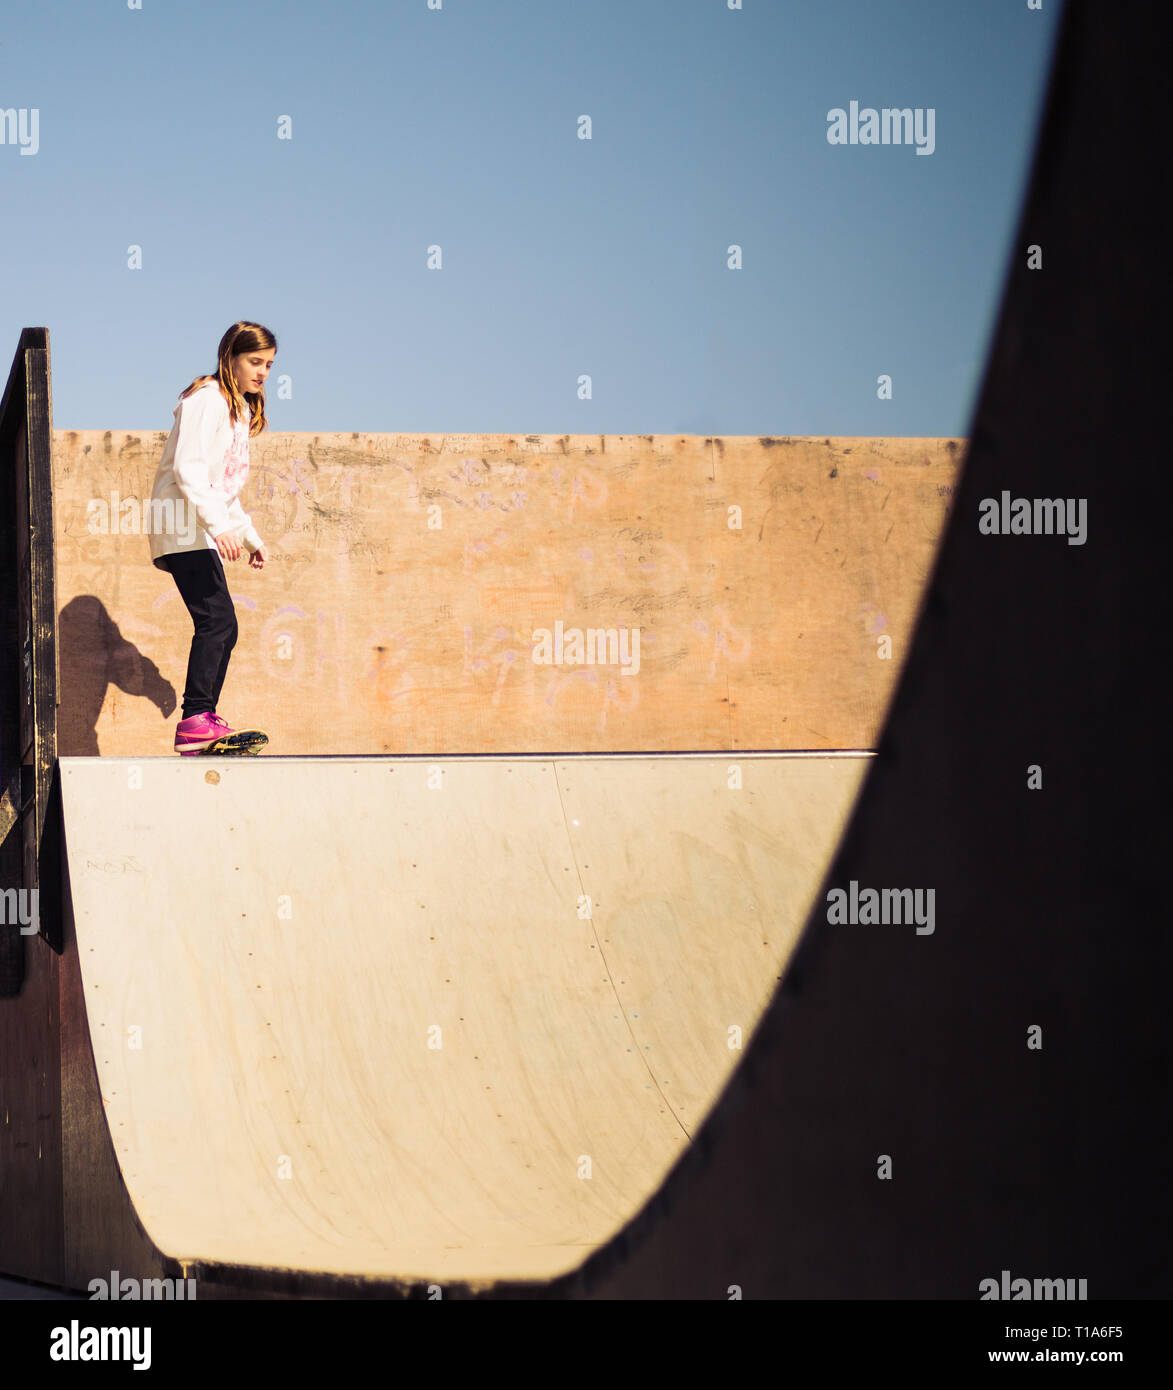 Beautiful teenage girl preparing to jump of the skate ramp on the skate board - Stock Image